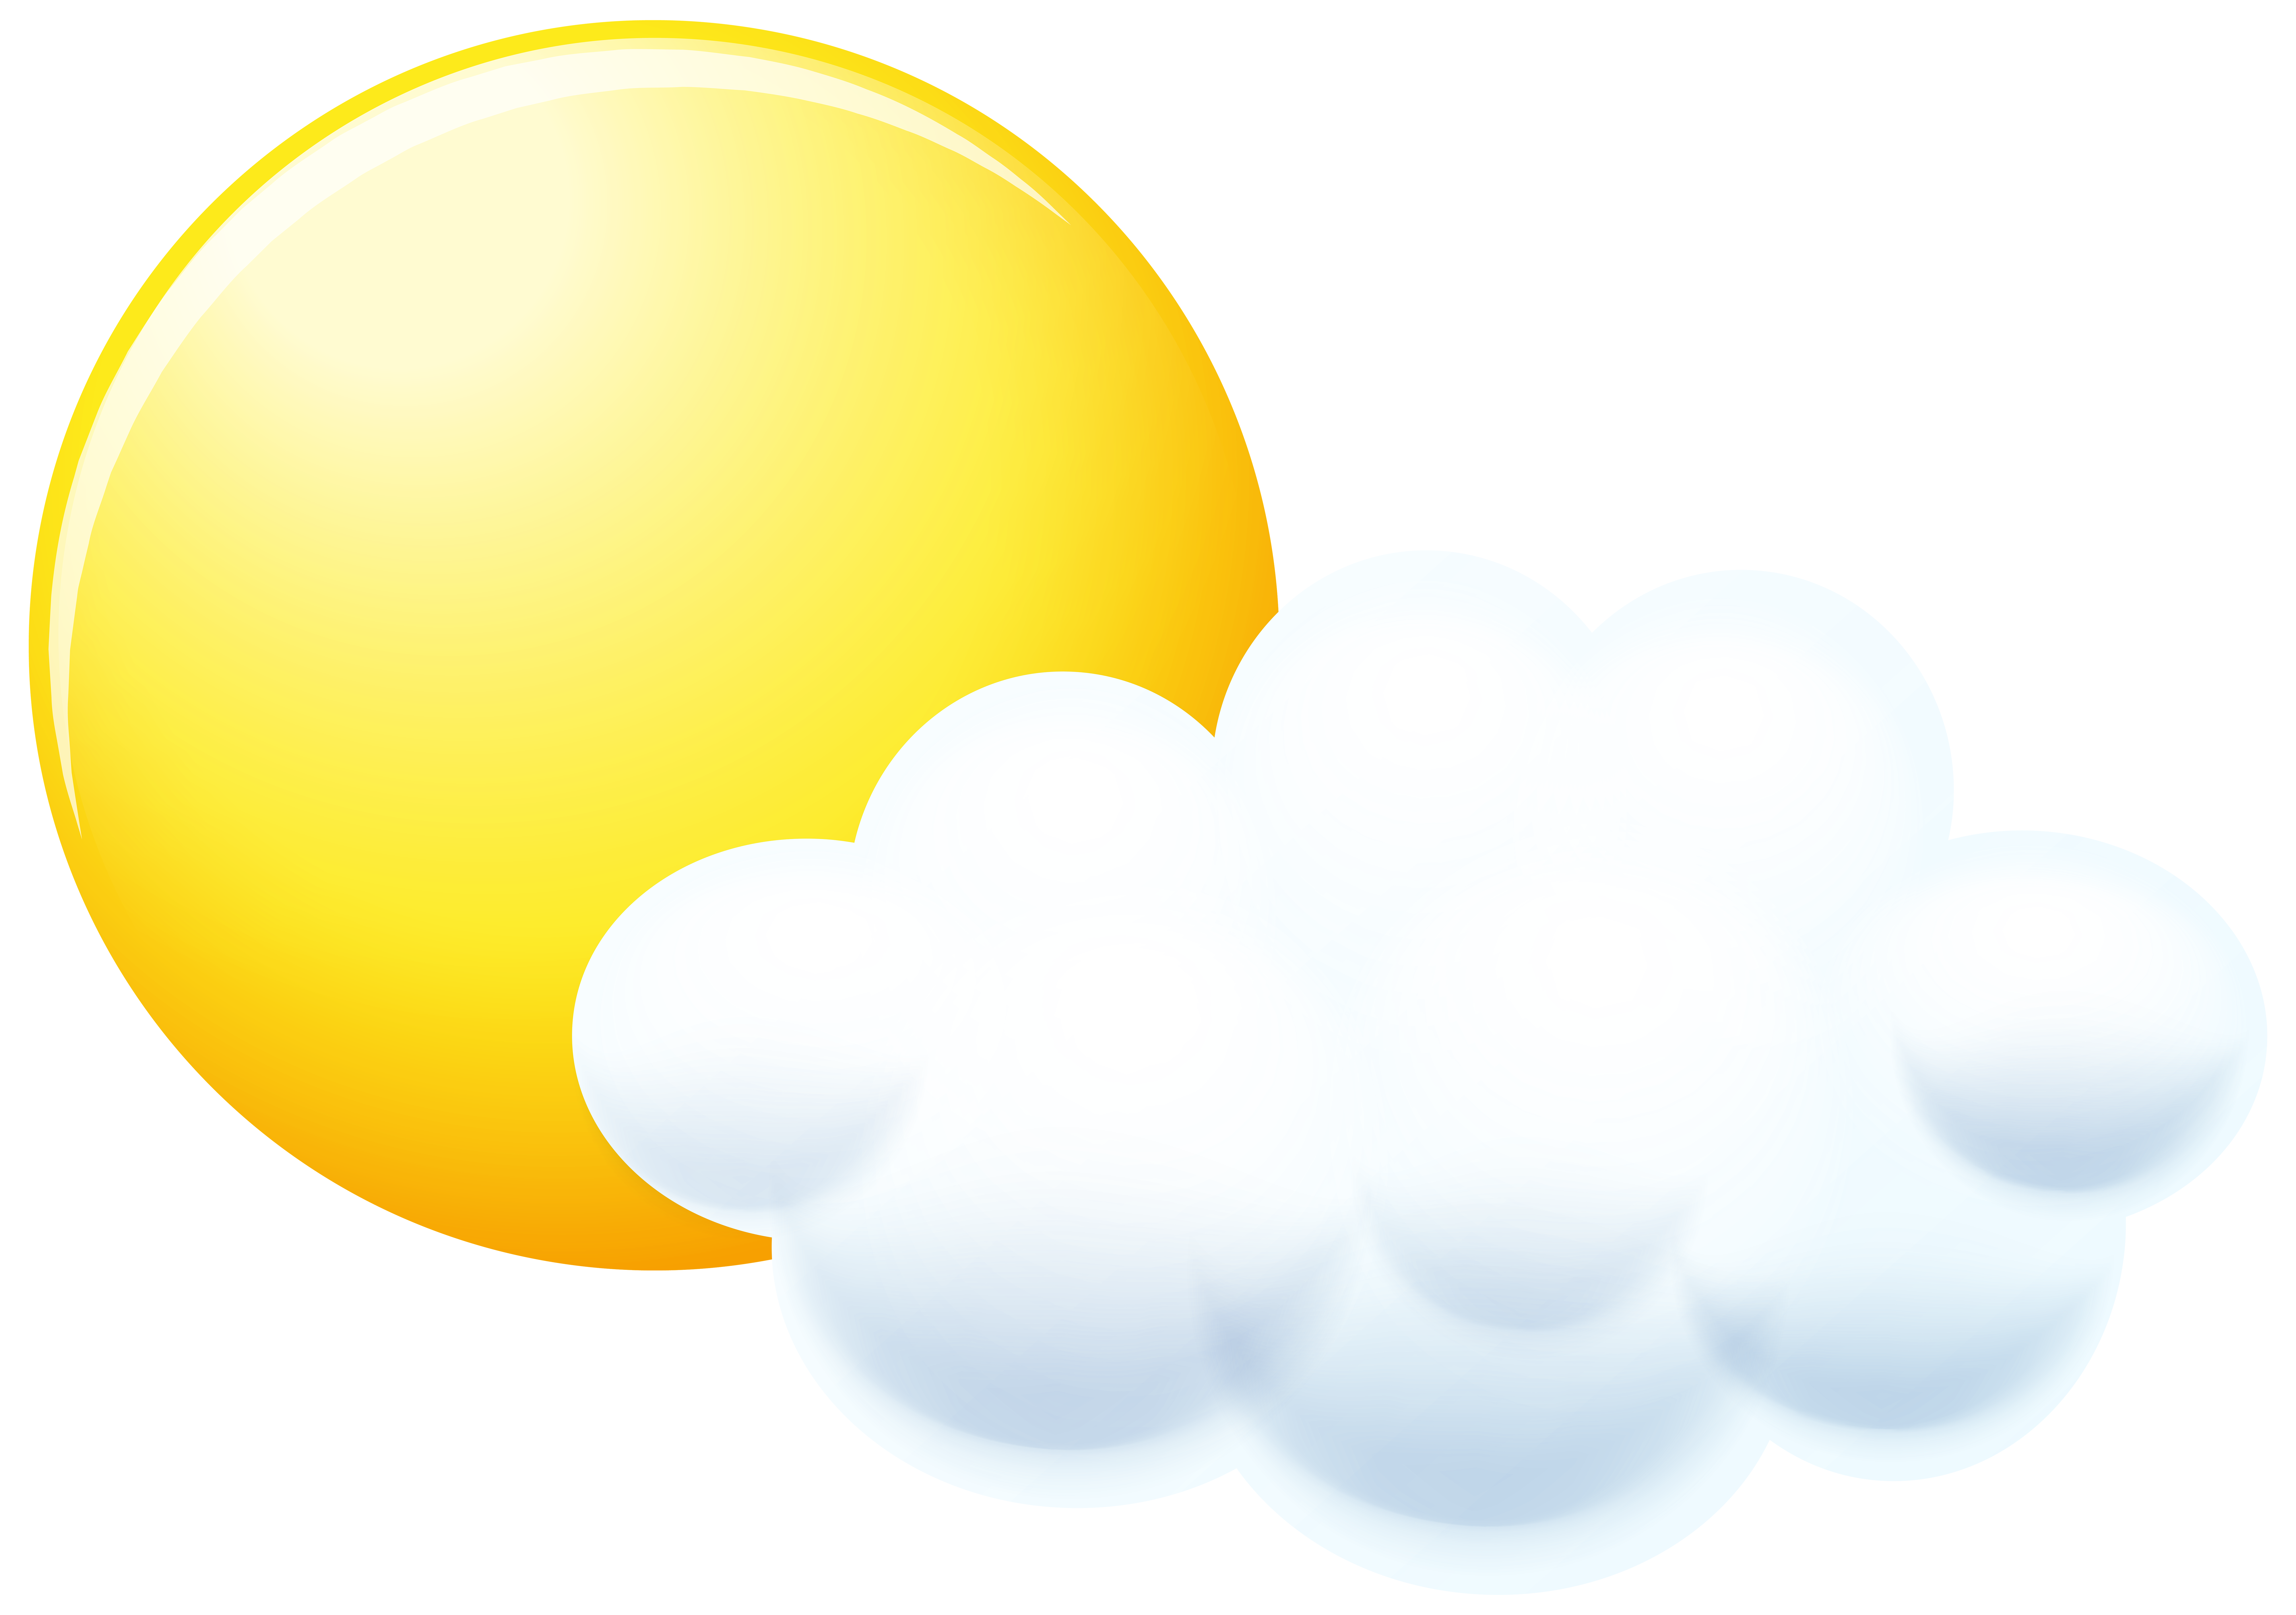 Sun and Cloud Clip Art PNG Image.